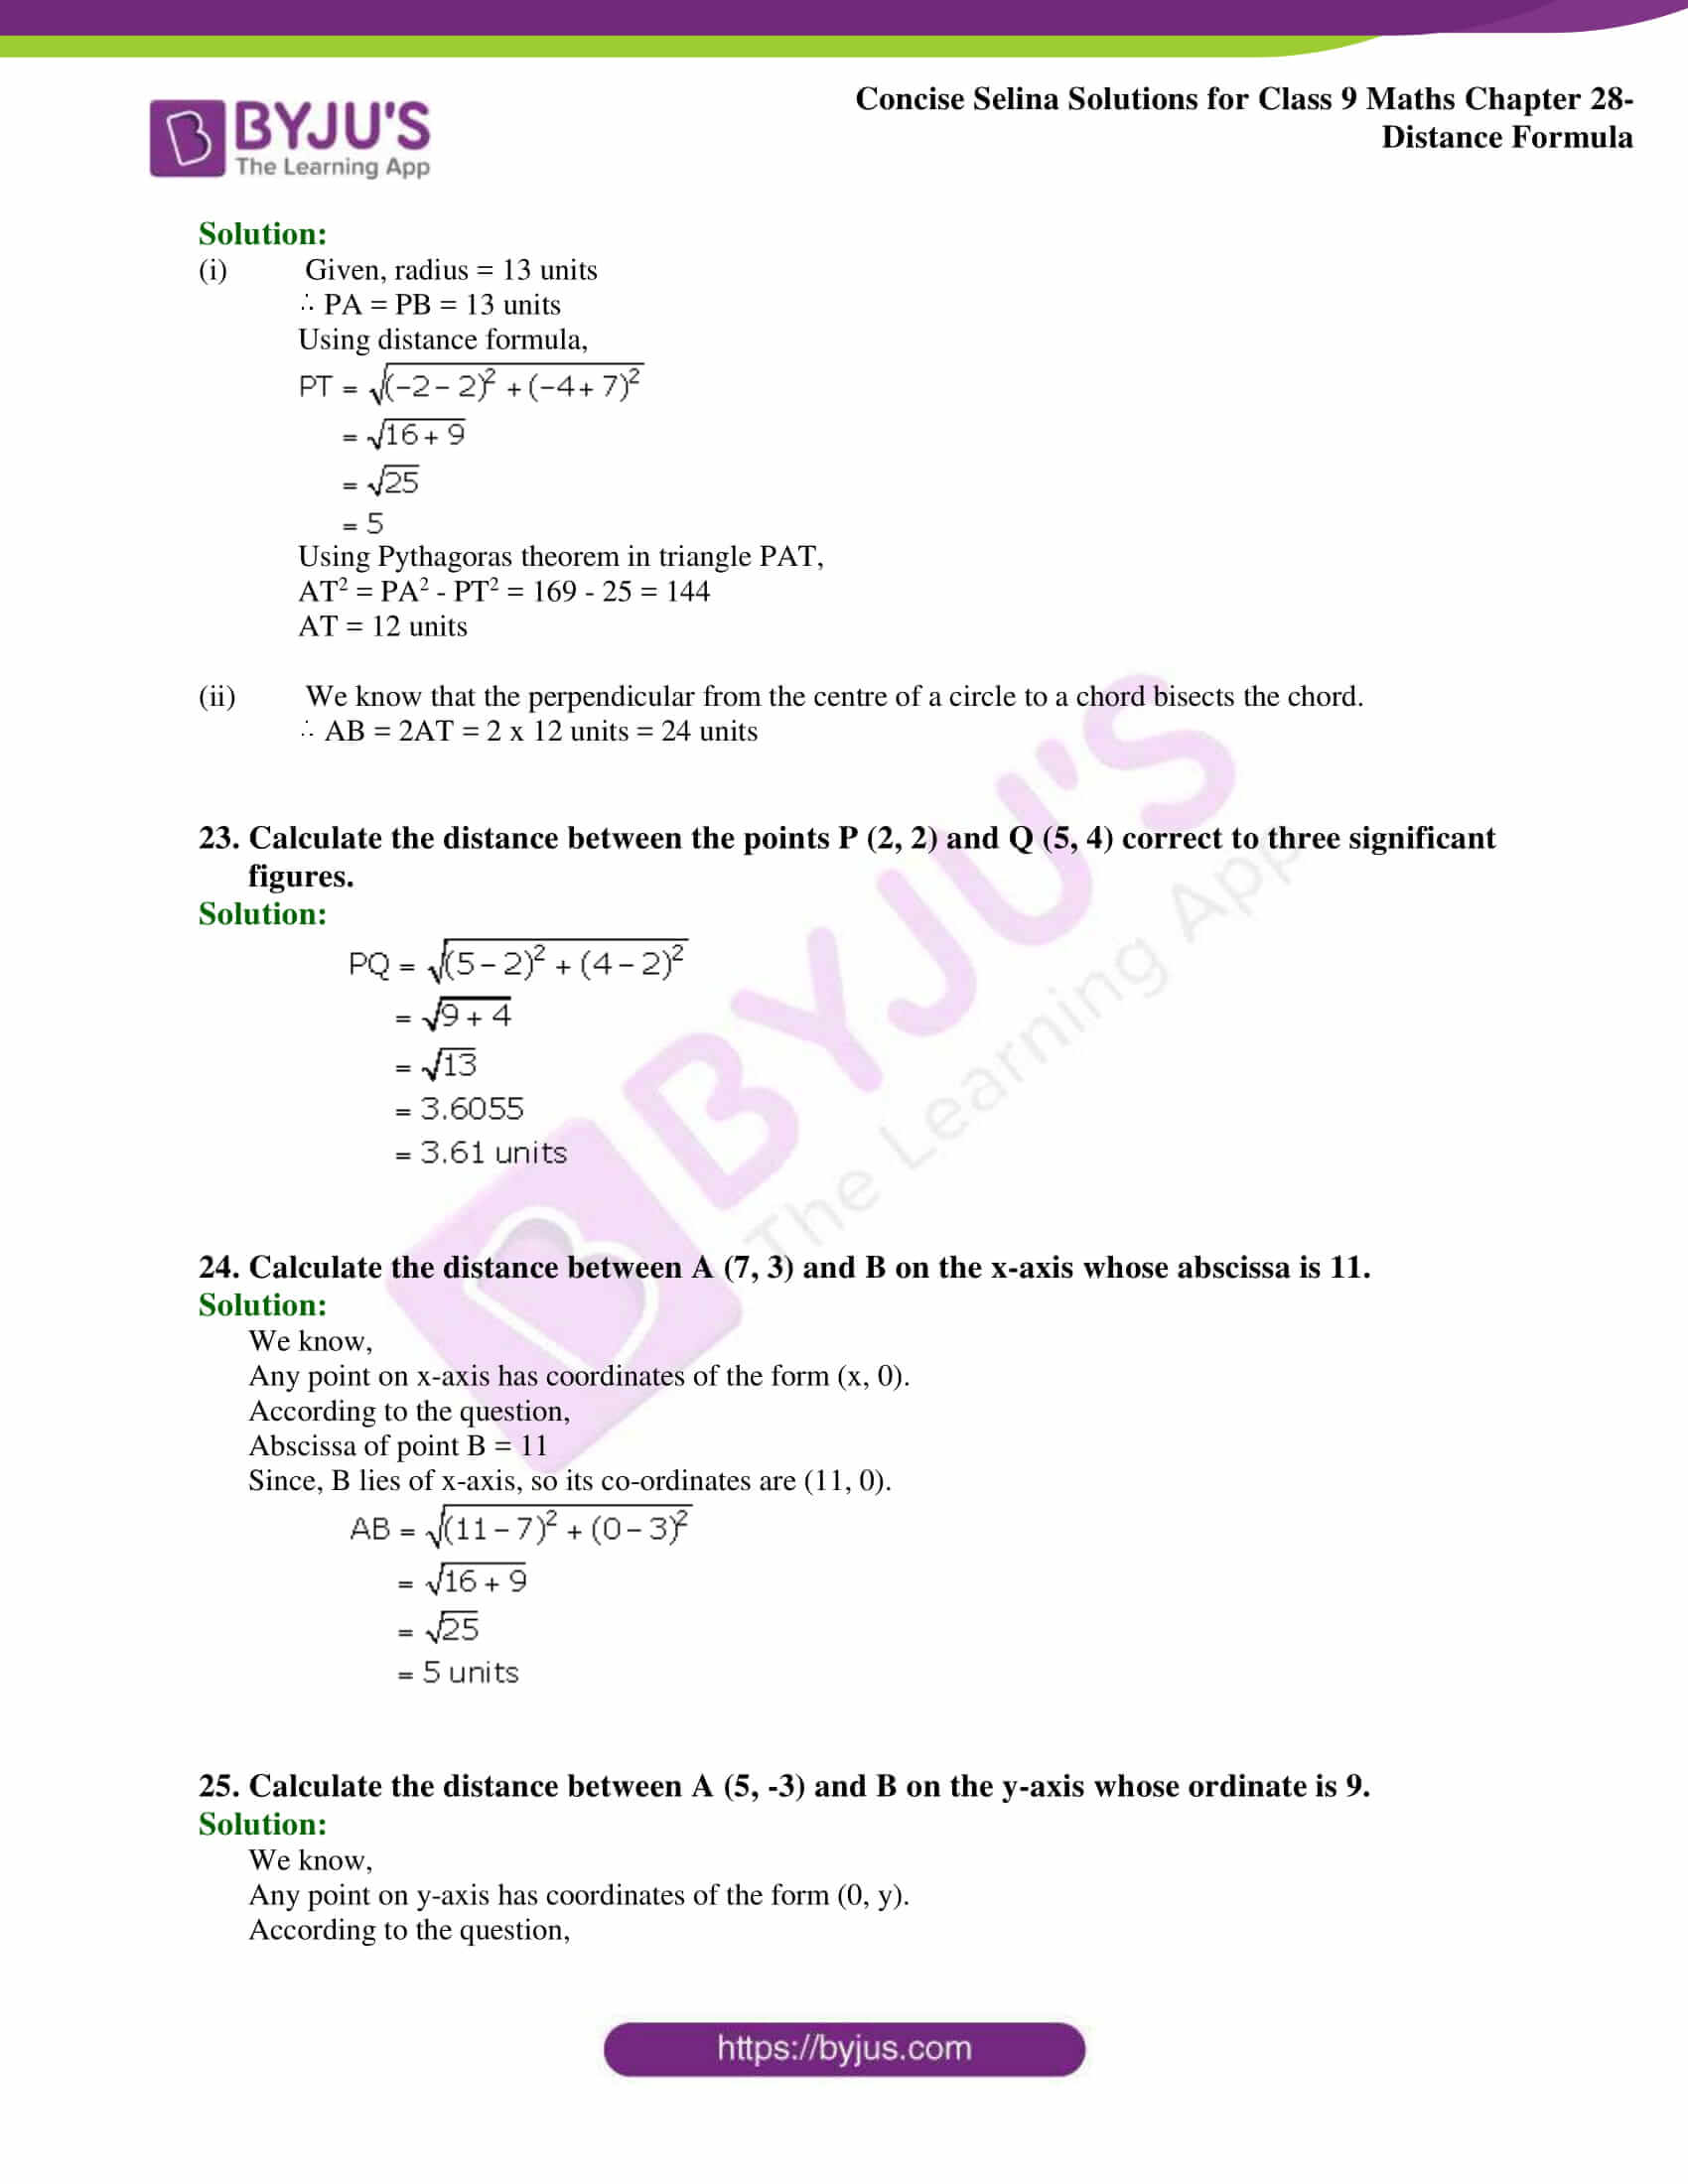 Concise Selina Solutions Class 9 Maths Chapter 28 Distance Formula part 10